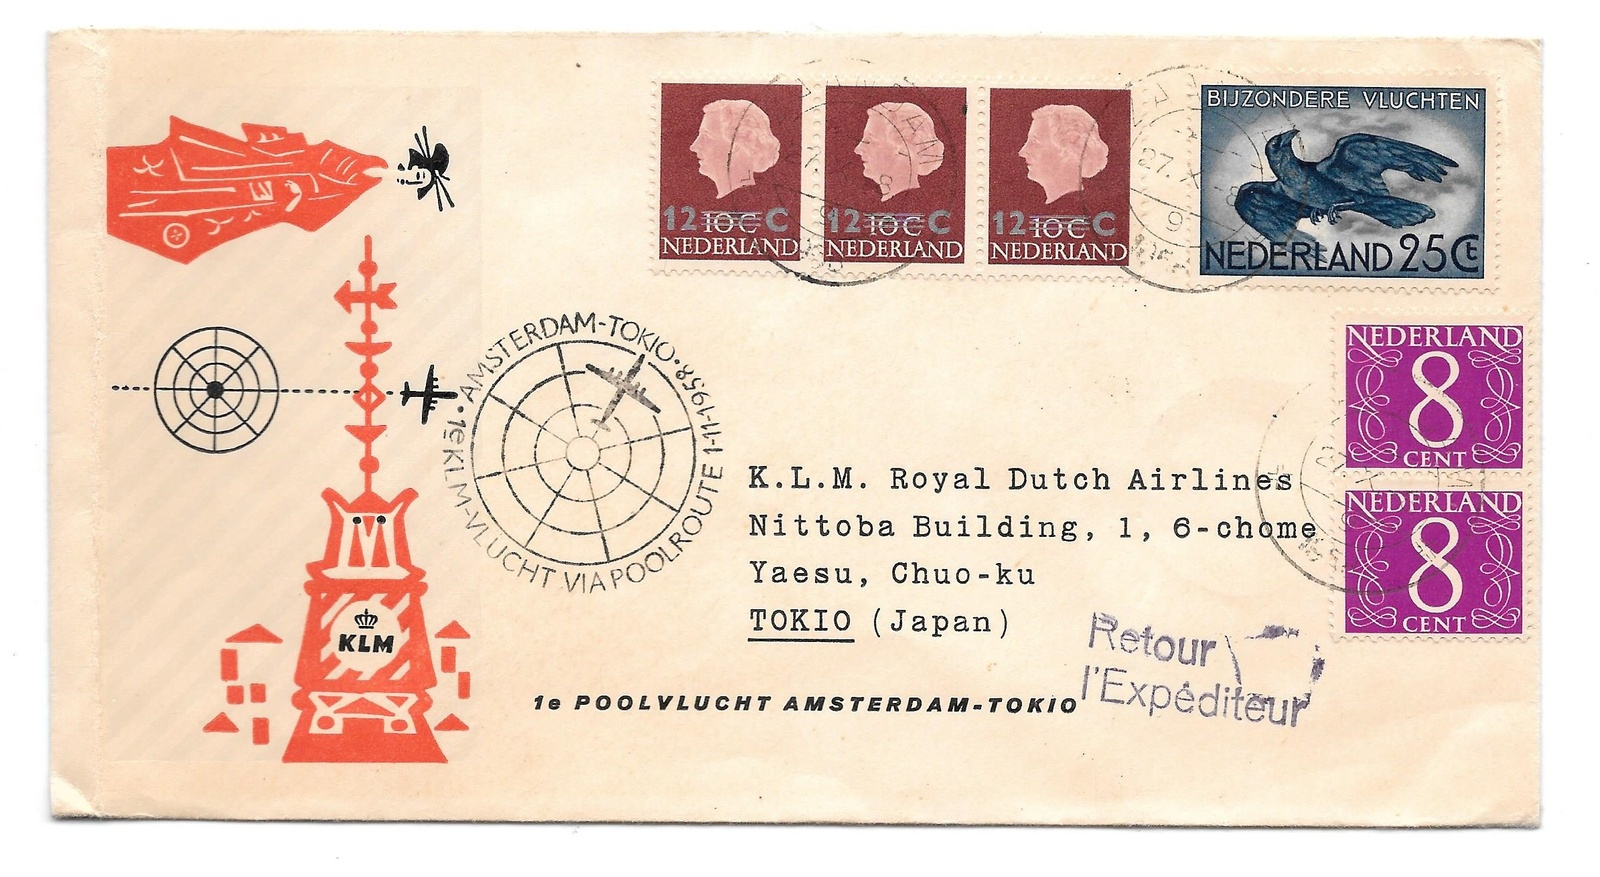 Primary image for Netherlands KLM First Polar Flight Amsterdam Tokio 1958 Poolvlucht 374 343a C12